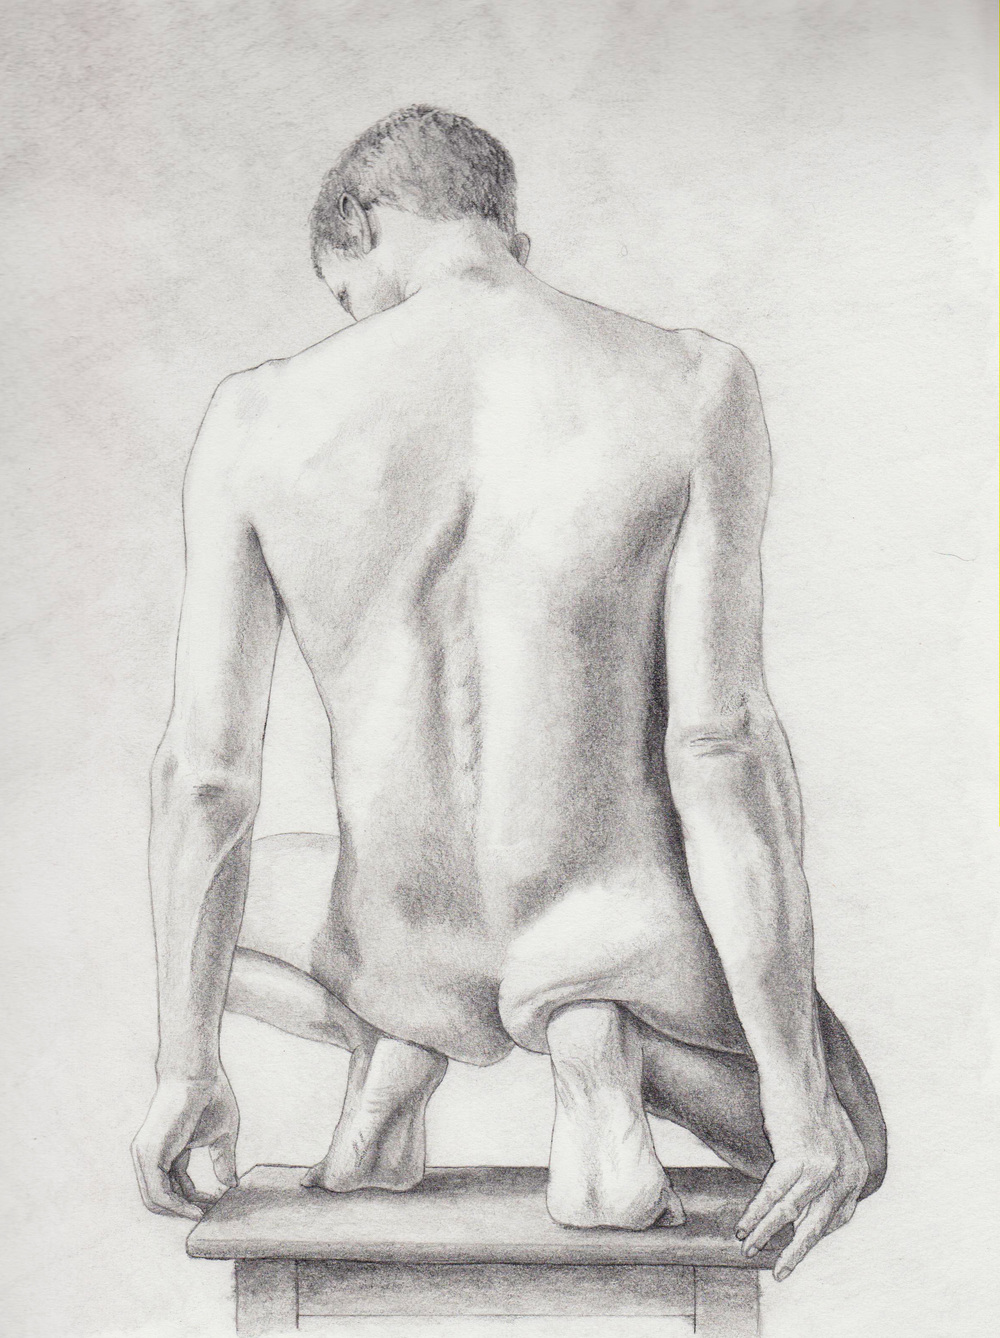 Male figure squatting